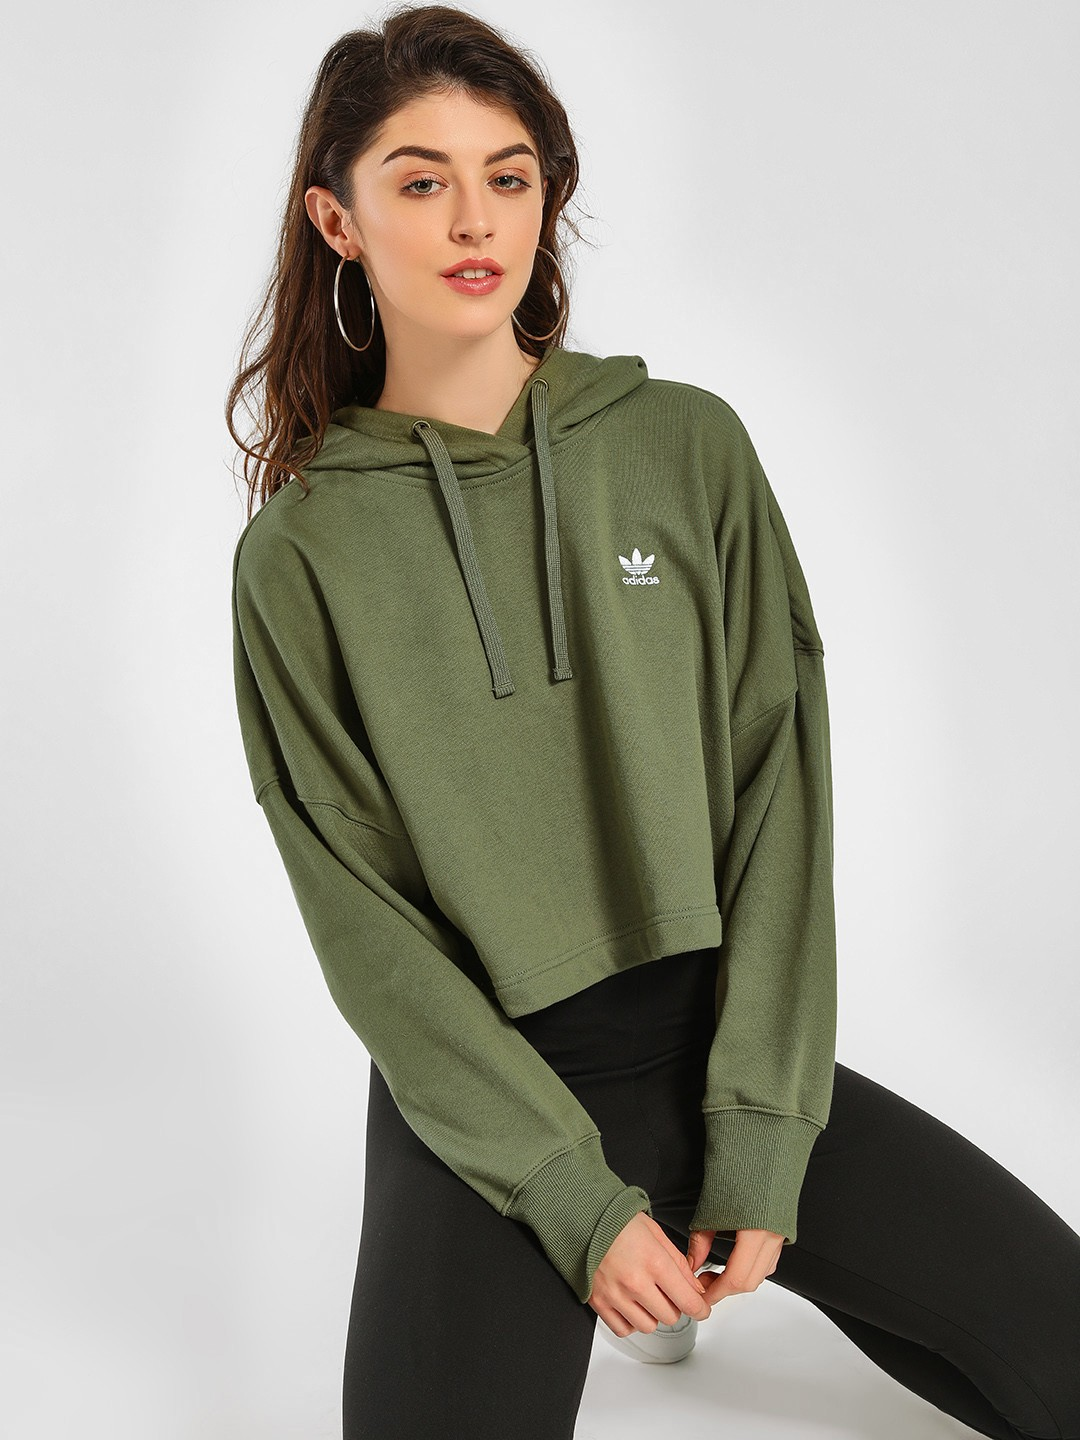 Adidas Originals Green Styling Complements Cropped Hoodie 1